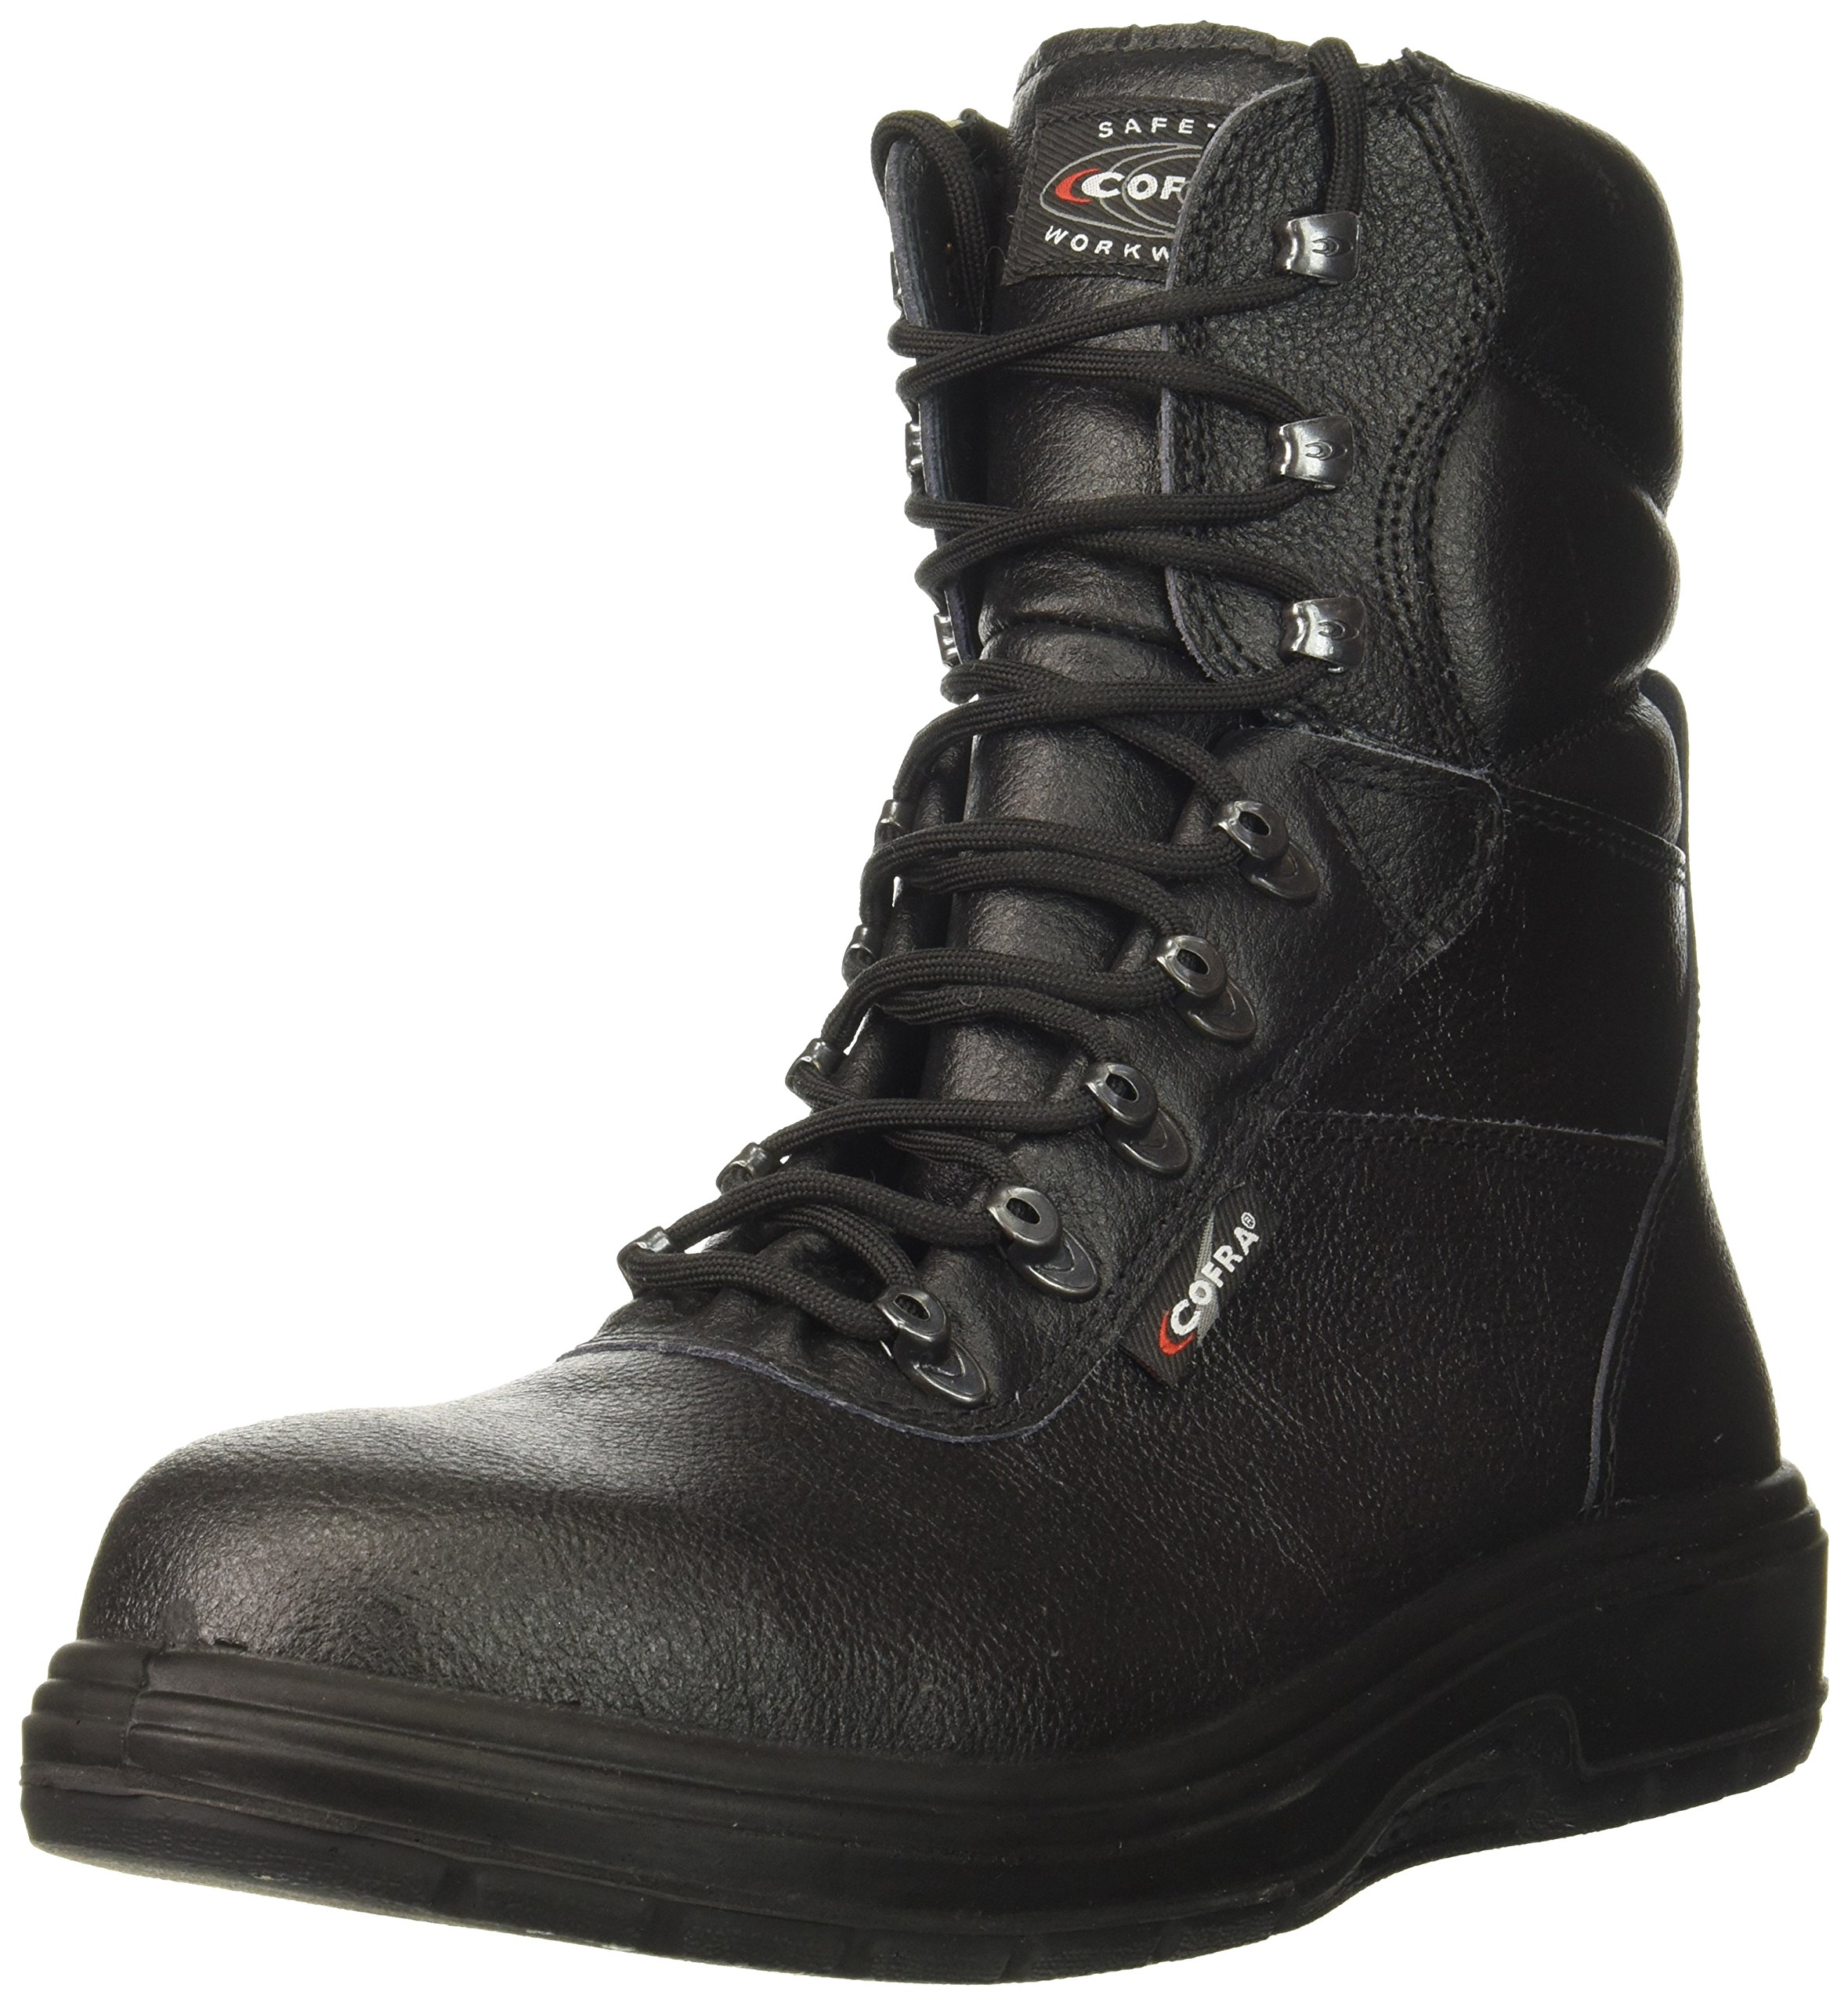 Cofra 82120-CU1.W11 Us Road EH PR Safety Boots, 11, Black by Cofra (Image #1)